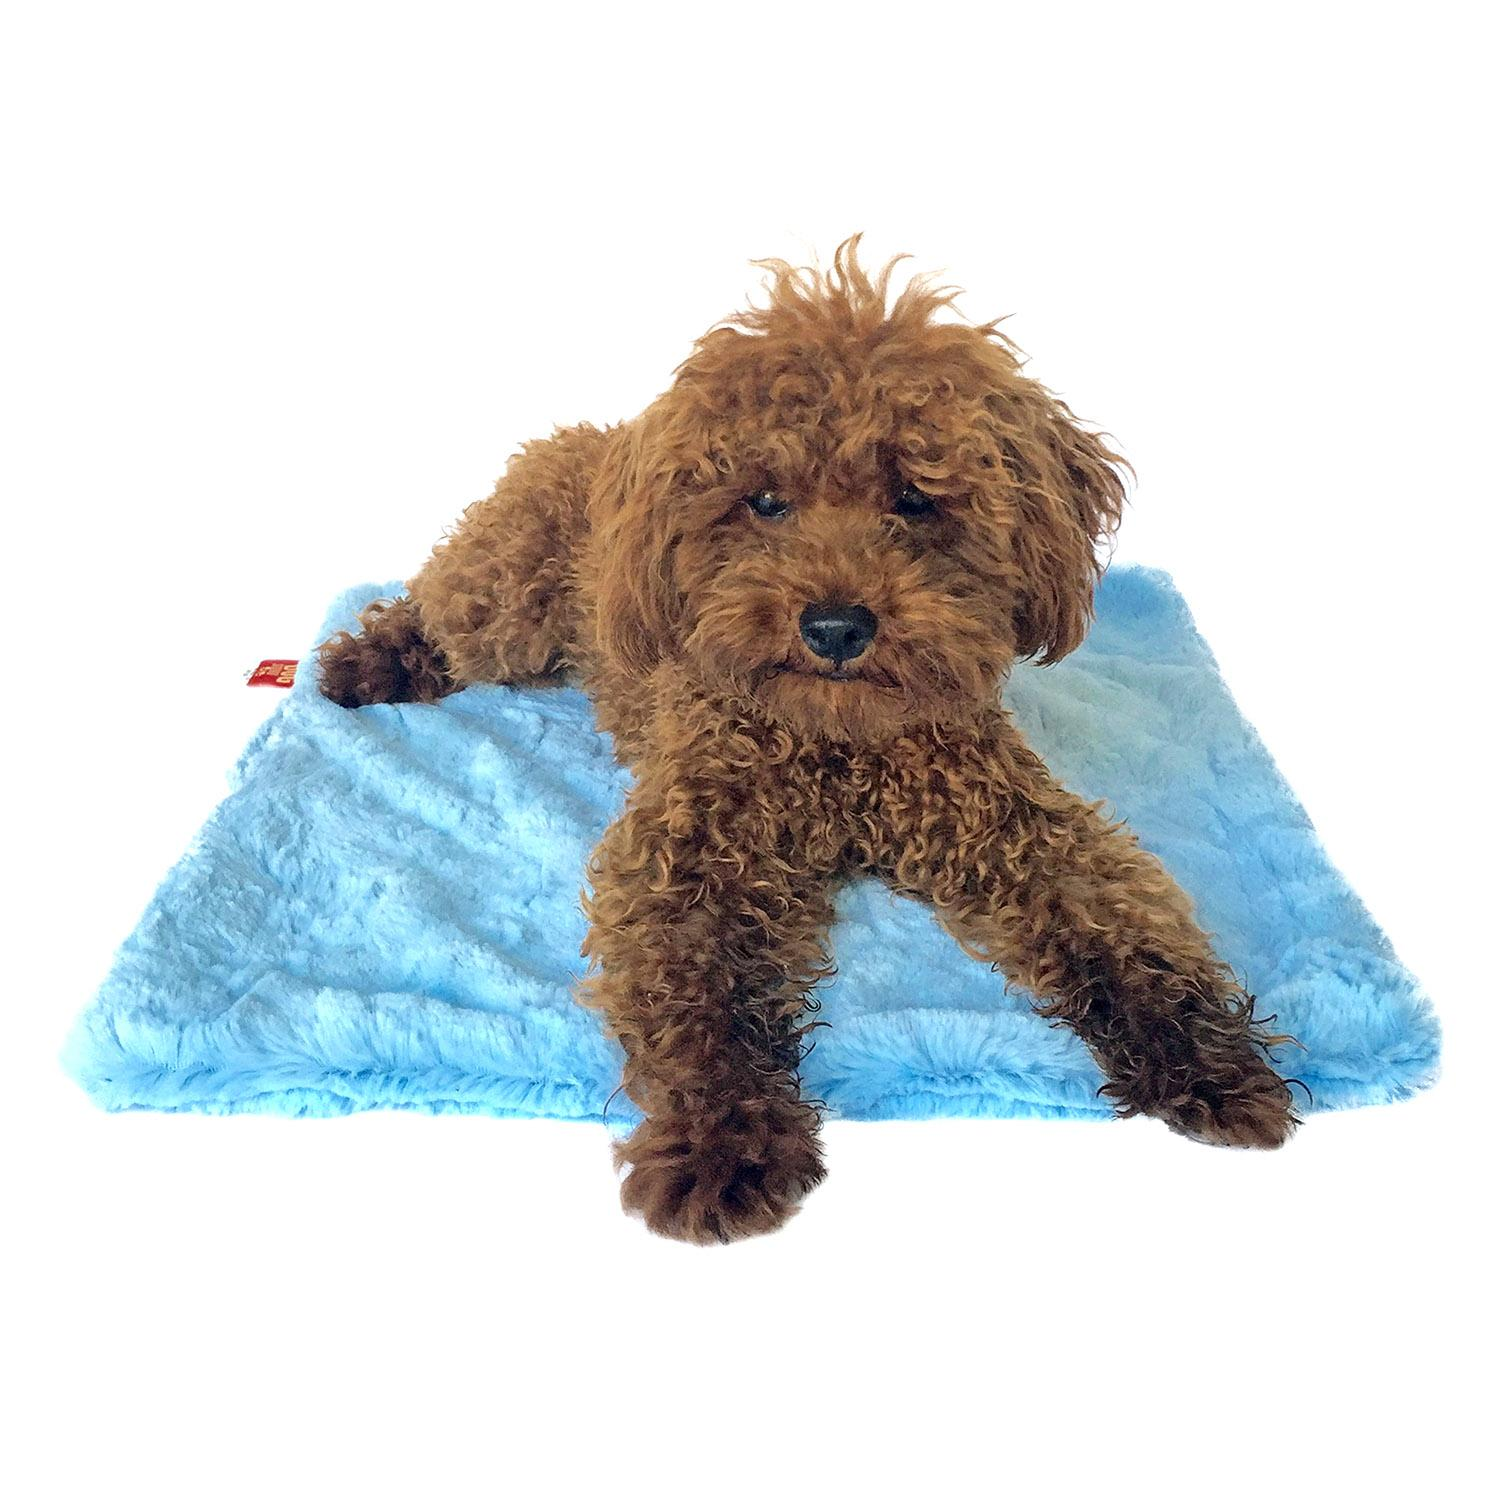 Bella Dog Blanket by The Dog Squad - Light Blue